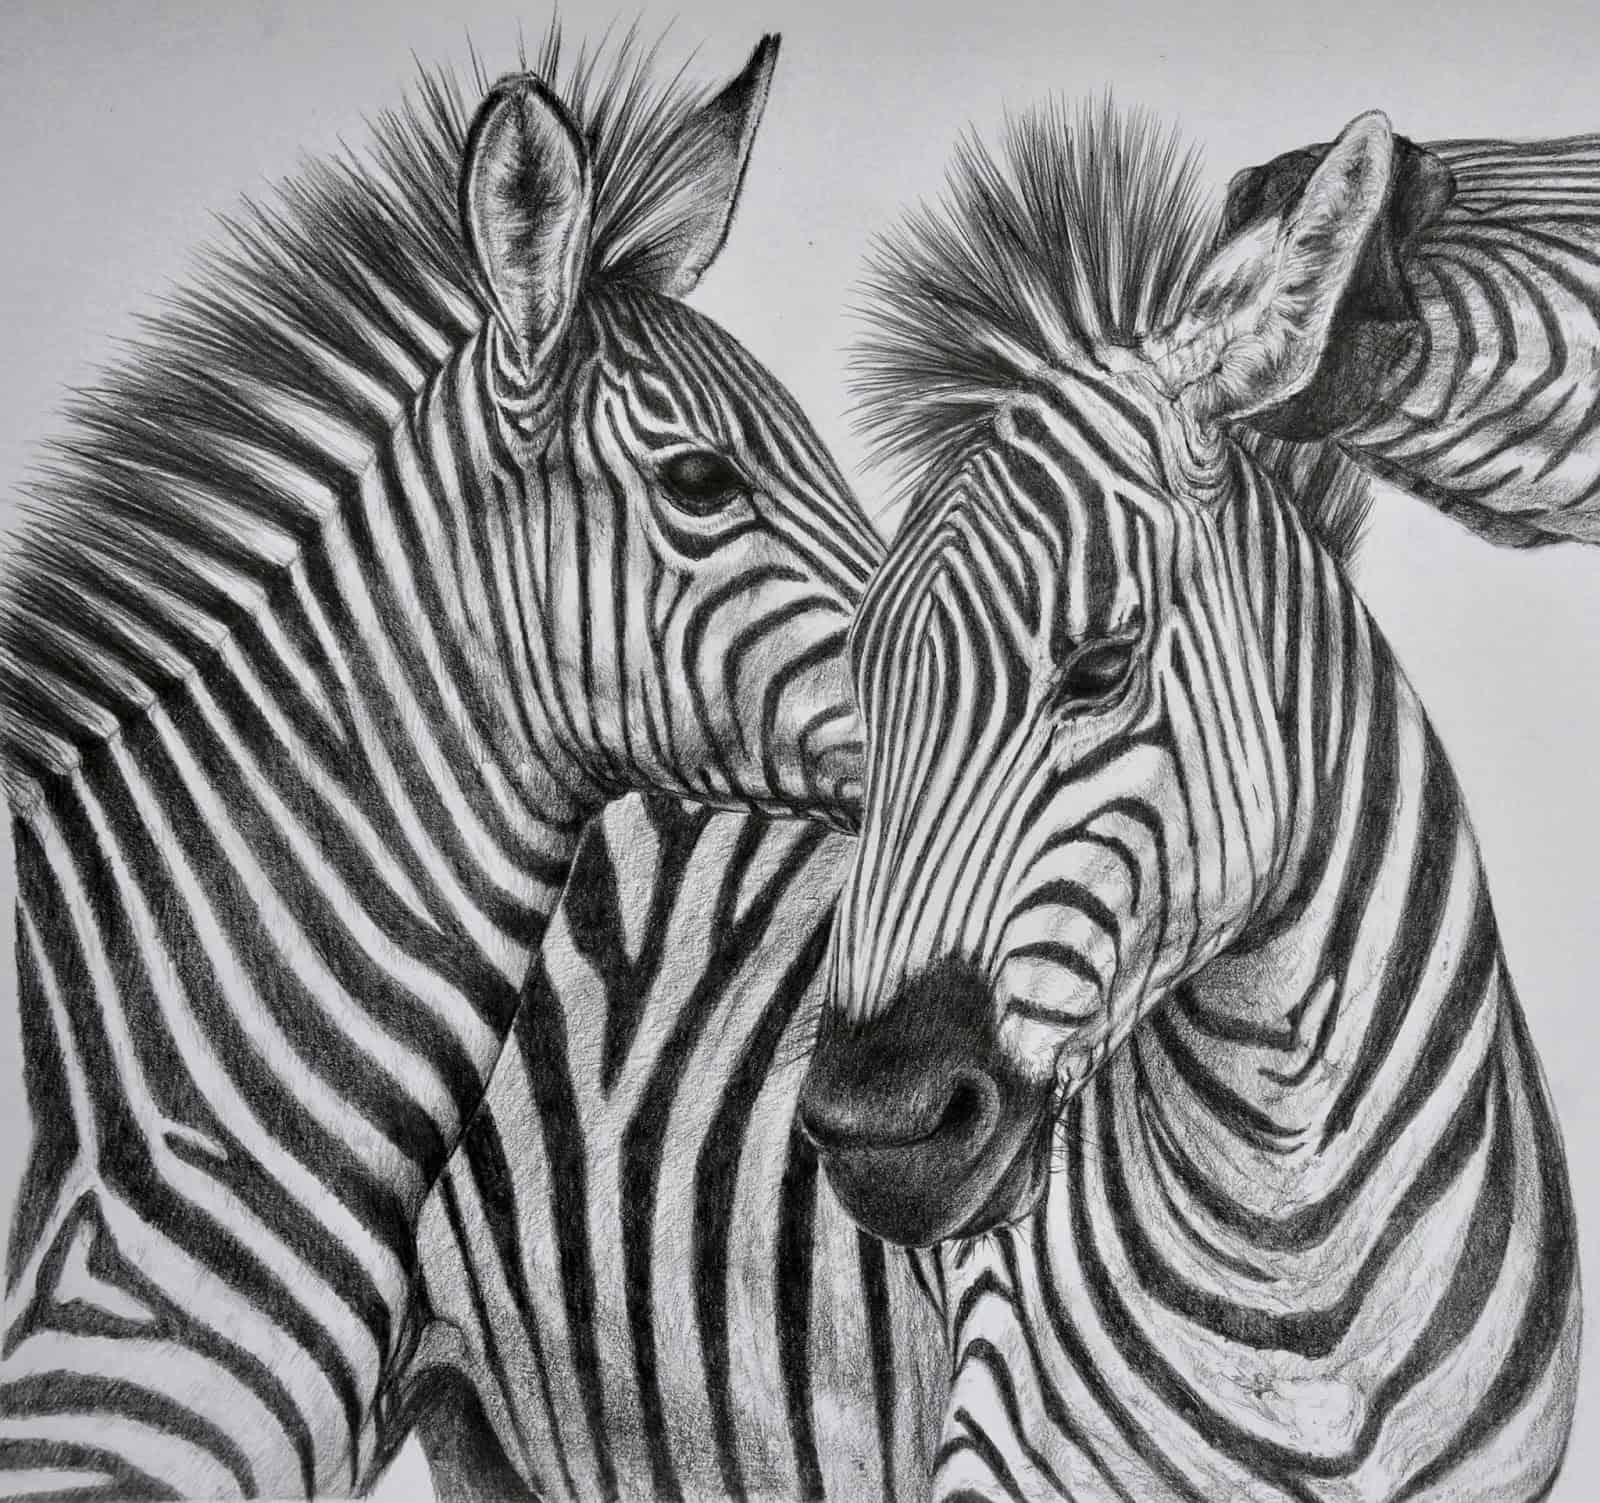 animal sketches realistic zebra animals wild inspiration drawings drawing sketch pencil tailandfur progress easy hipster